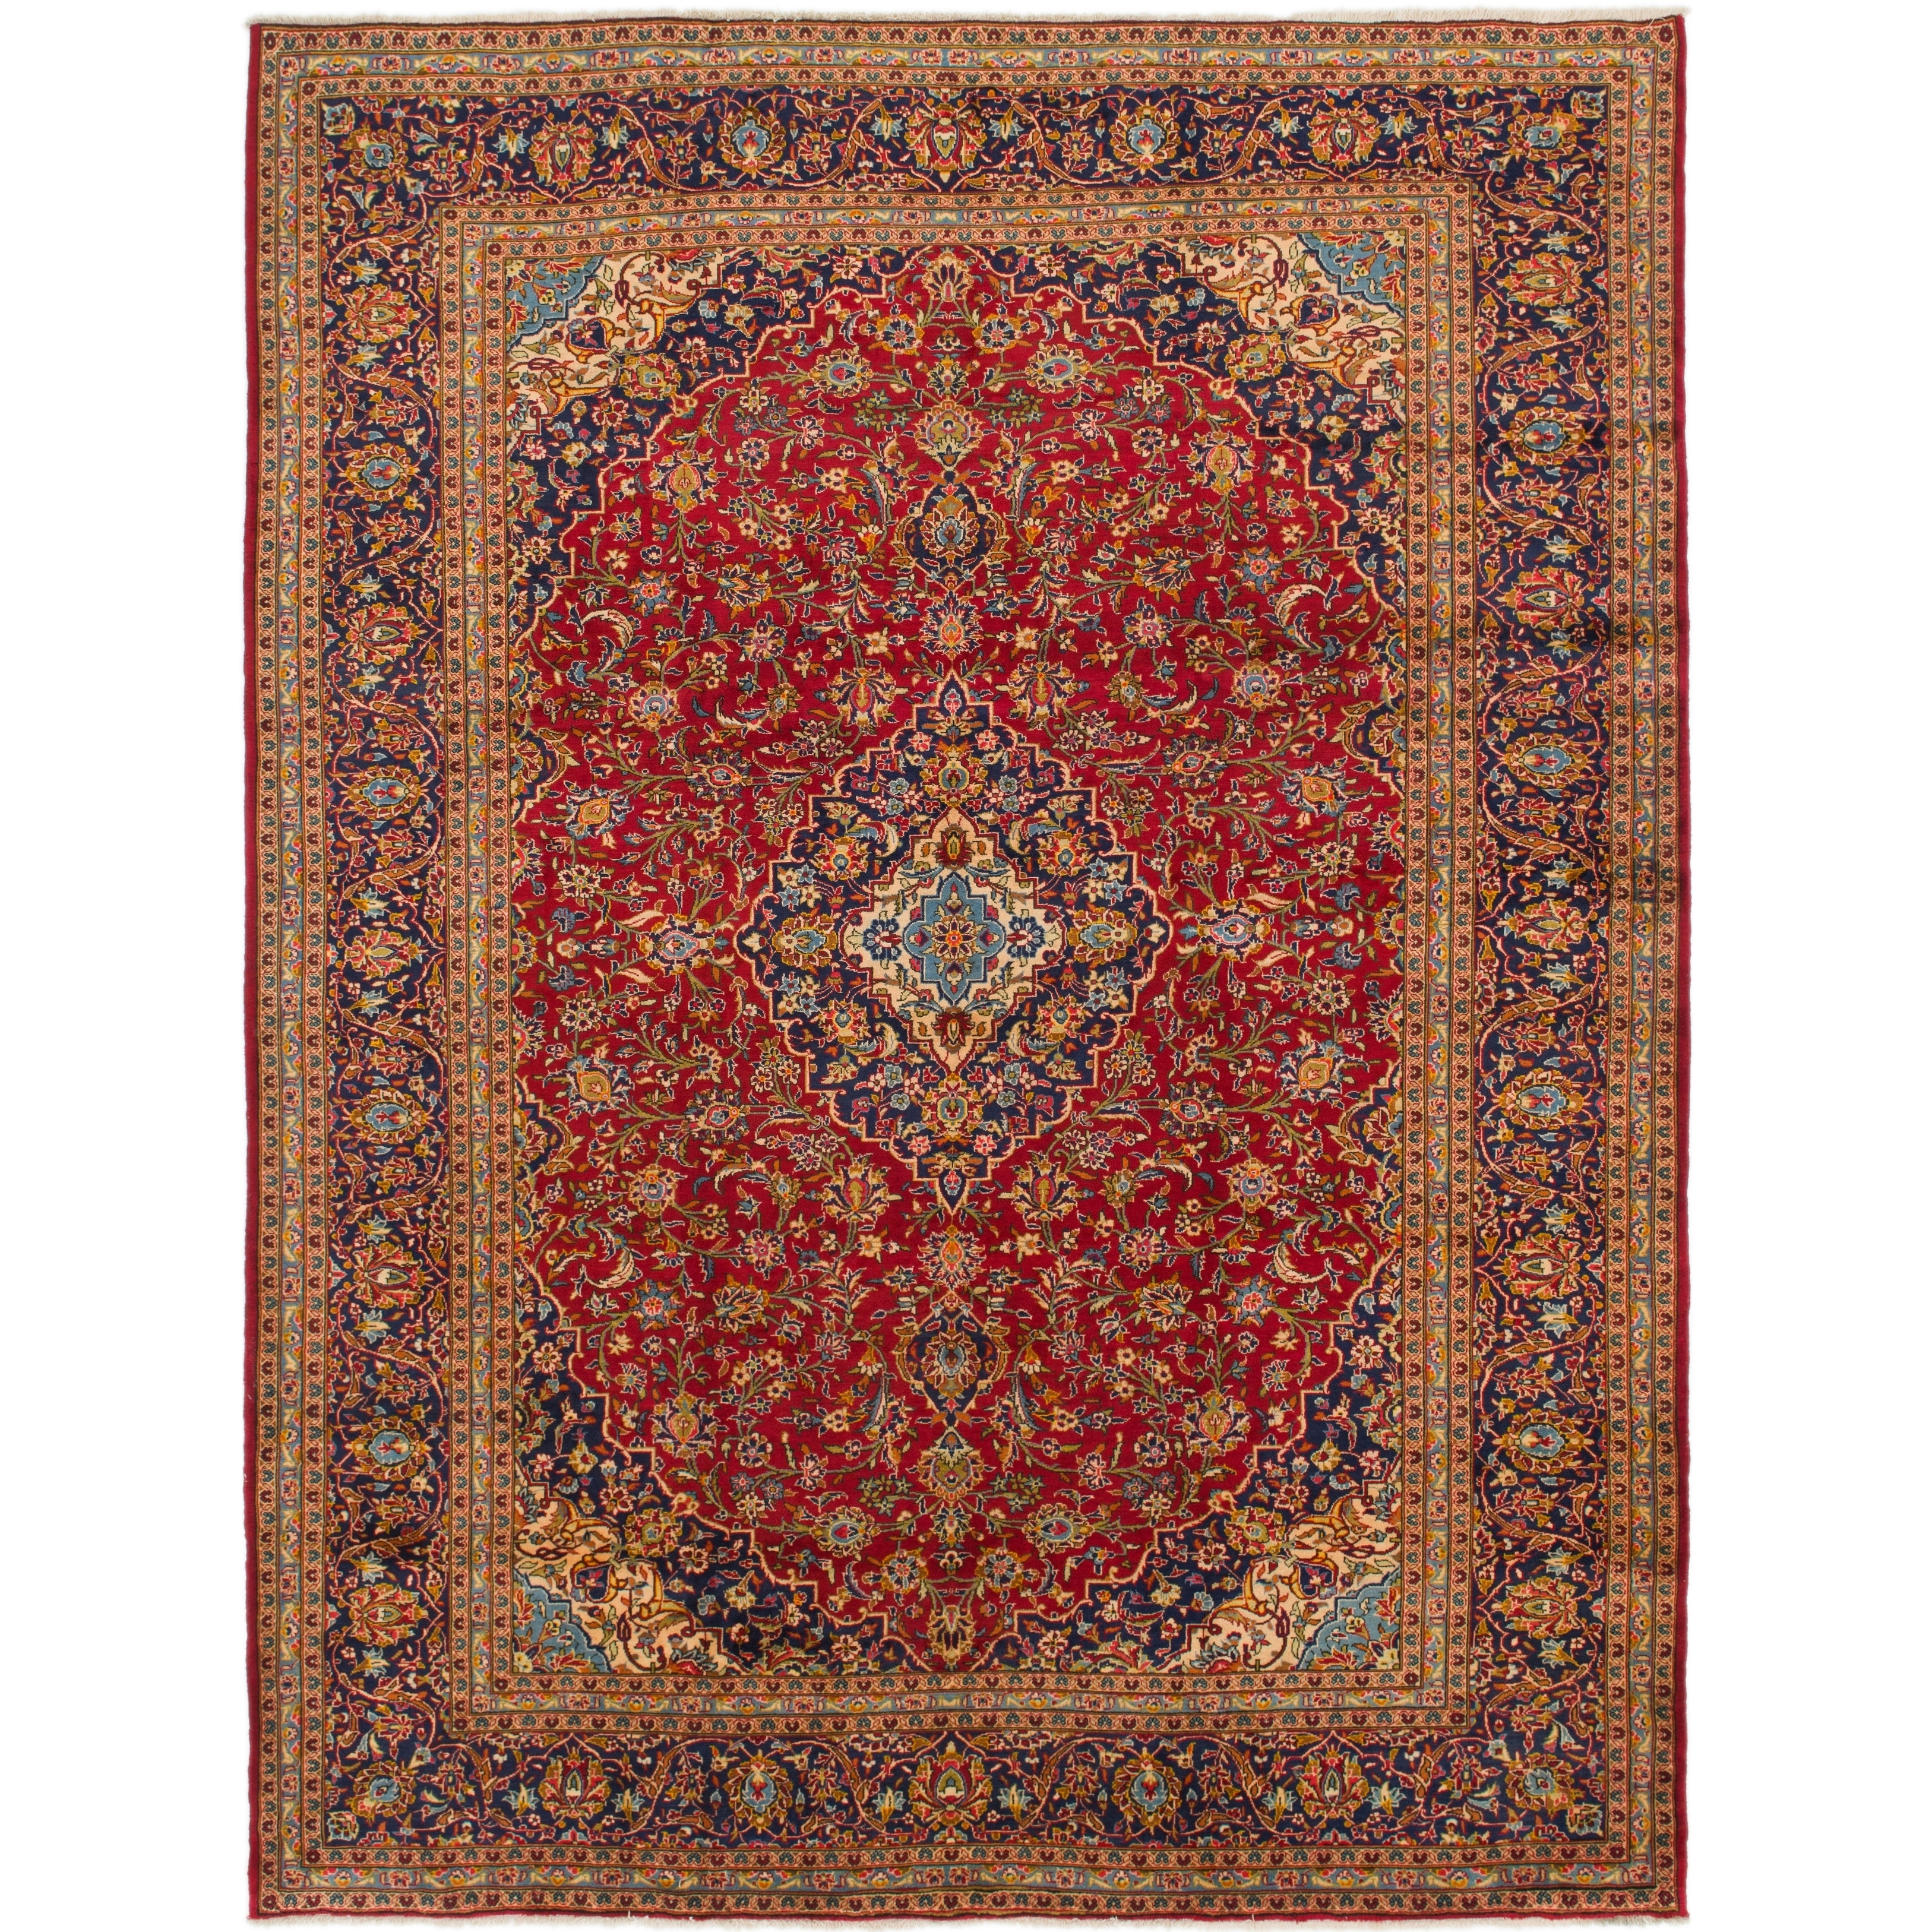 Hand Knotted Kashan Wool Area Rug - 9 9 x 12 10 (Red - 9 9 x 12 10)